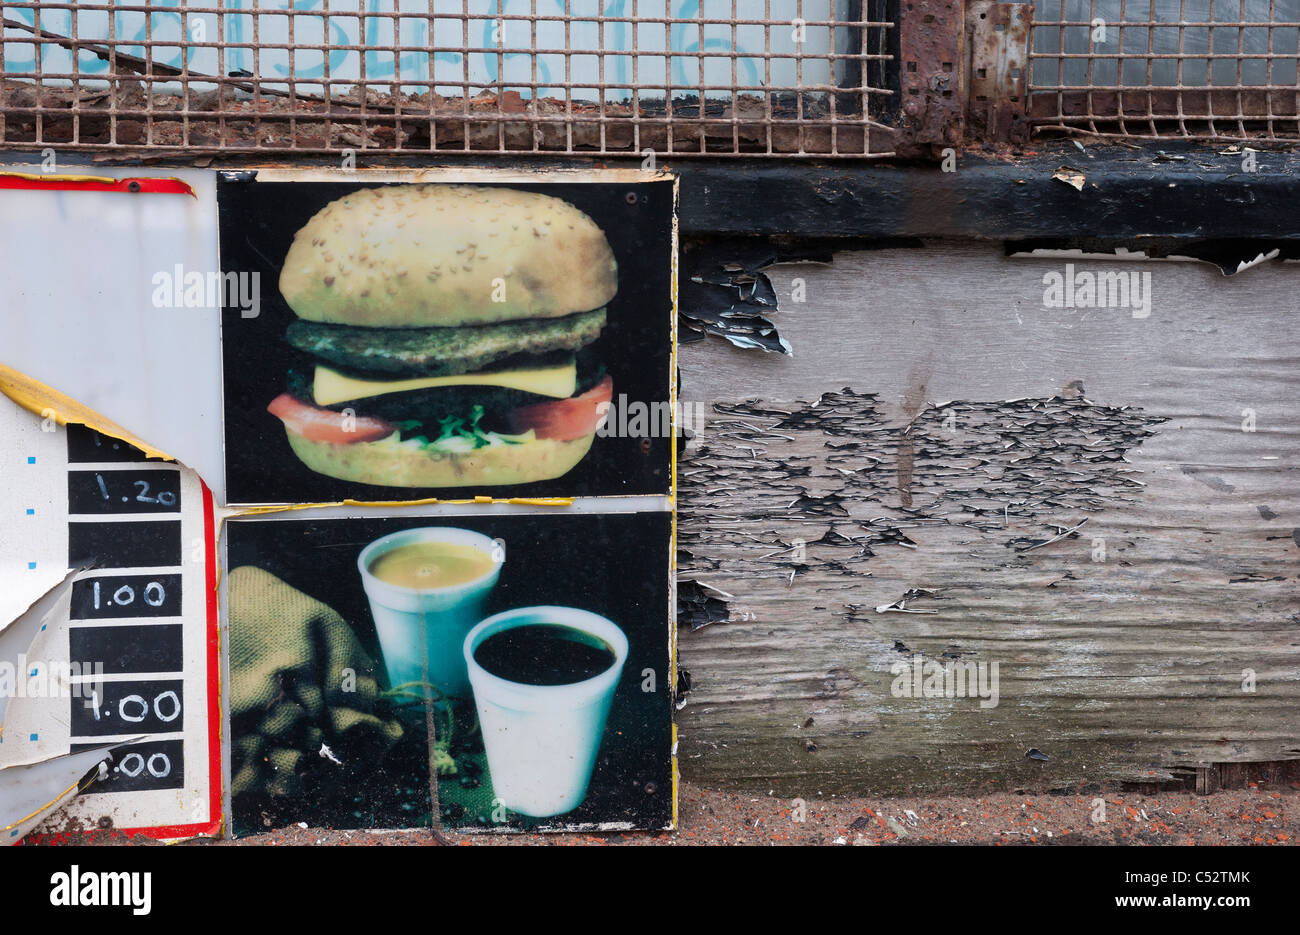 old fast-food sign - Stock Image